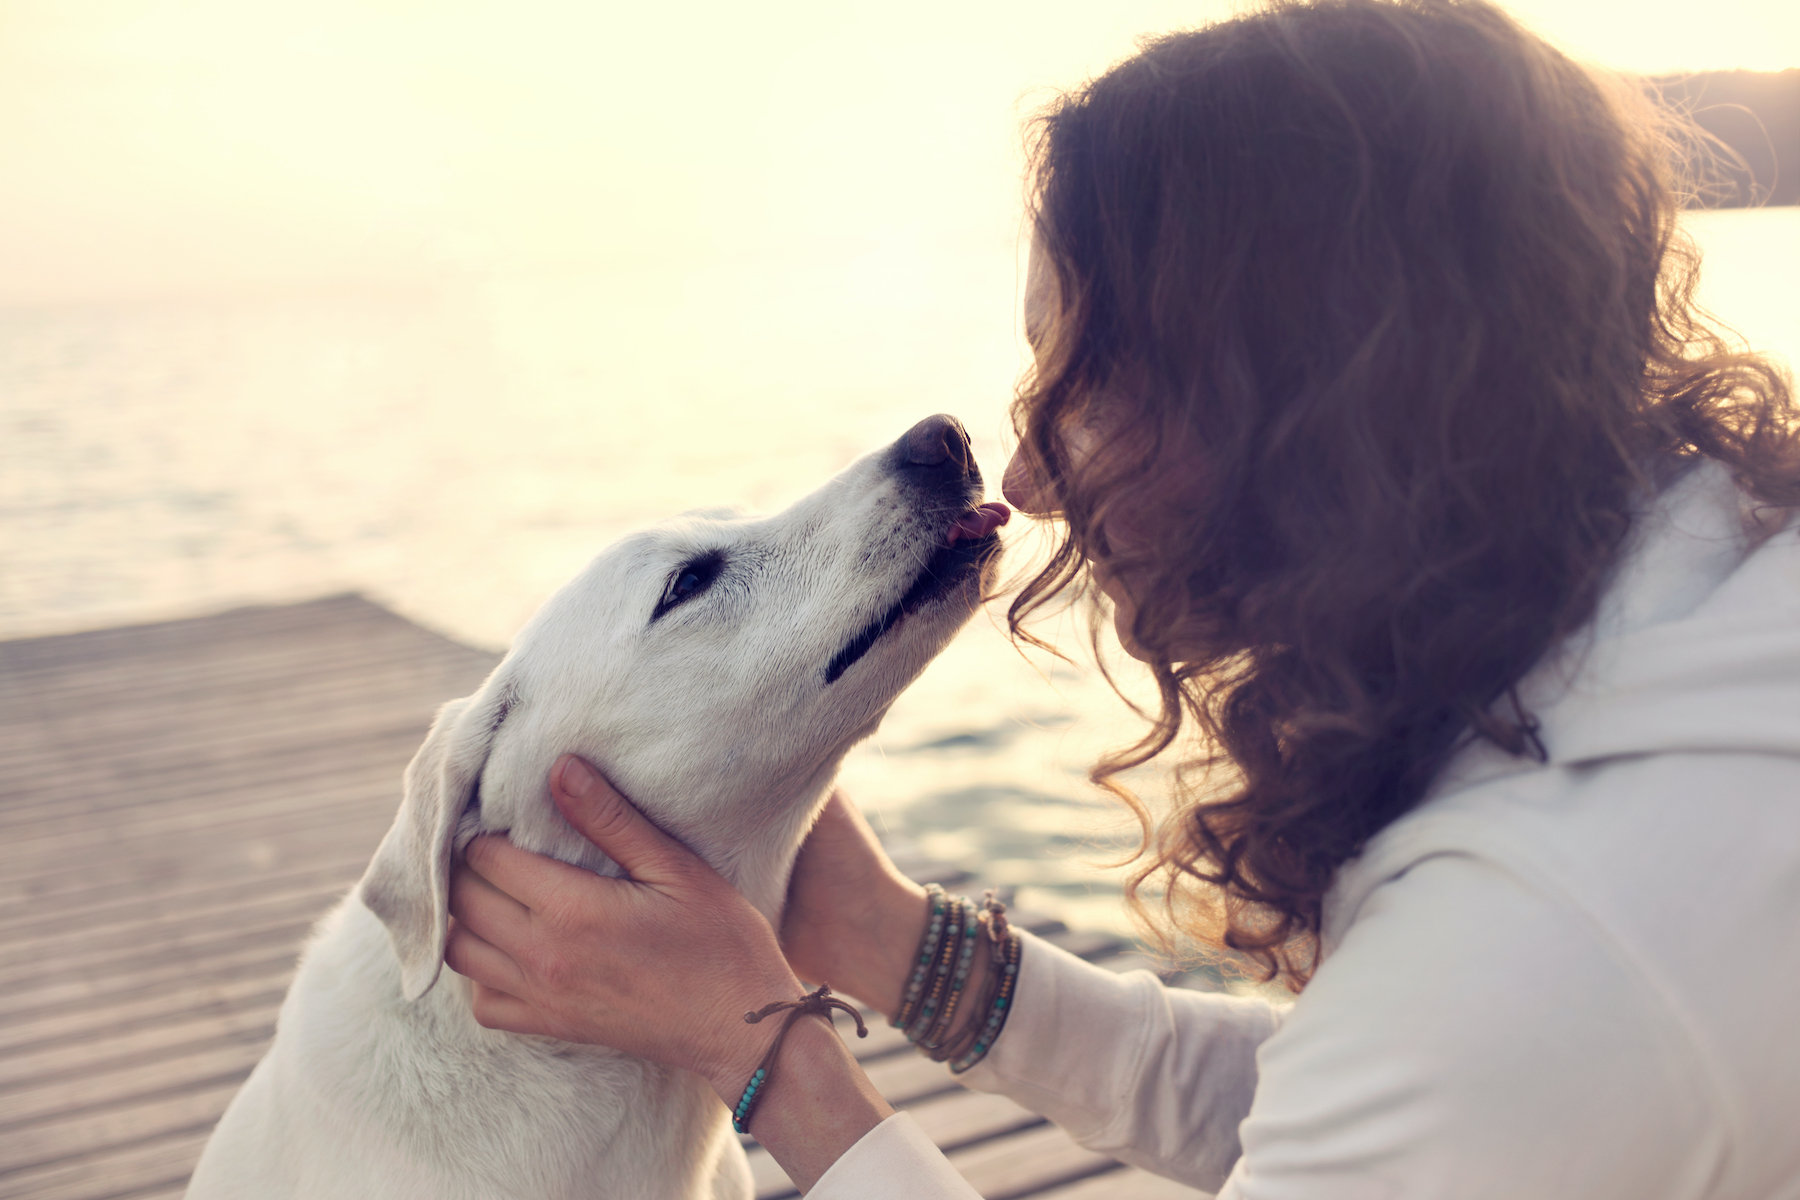 Canva - His owner dog licks gently, loving gesture